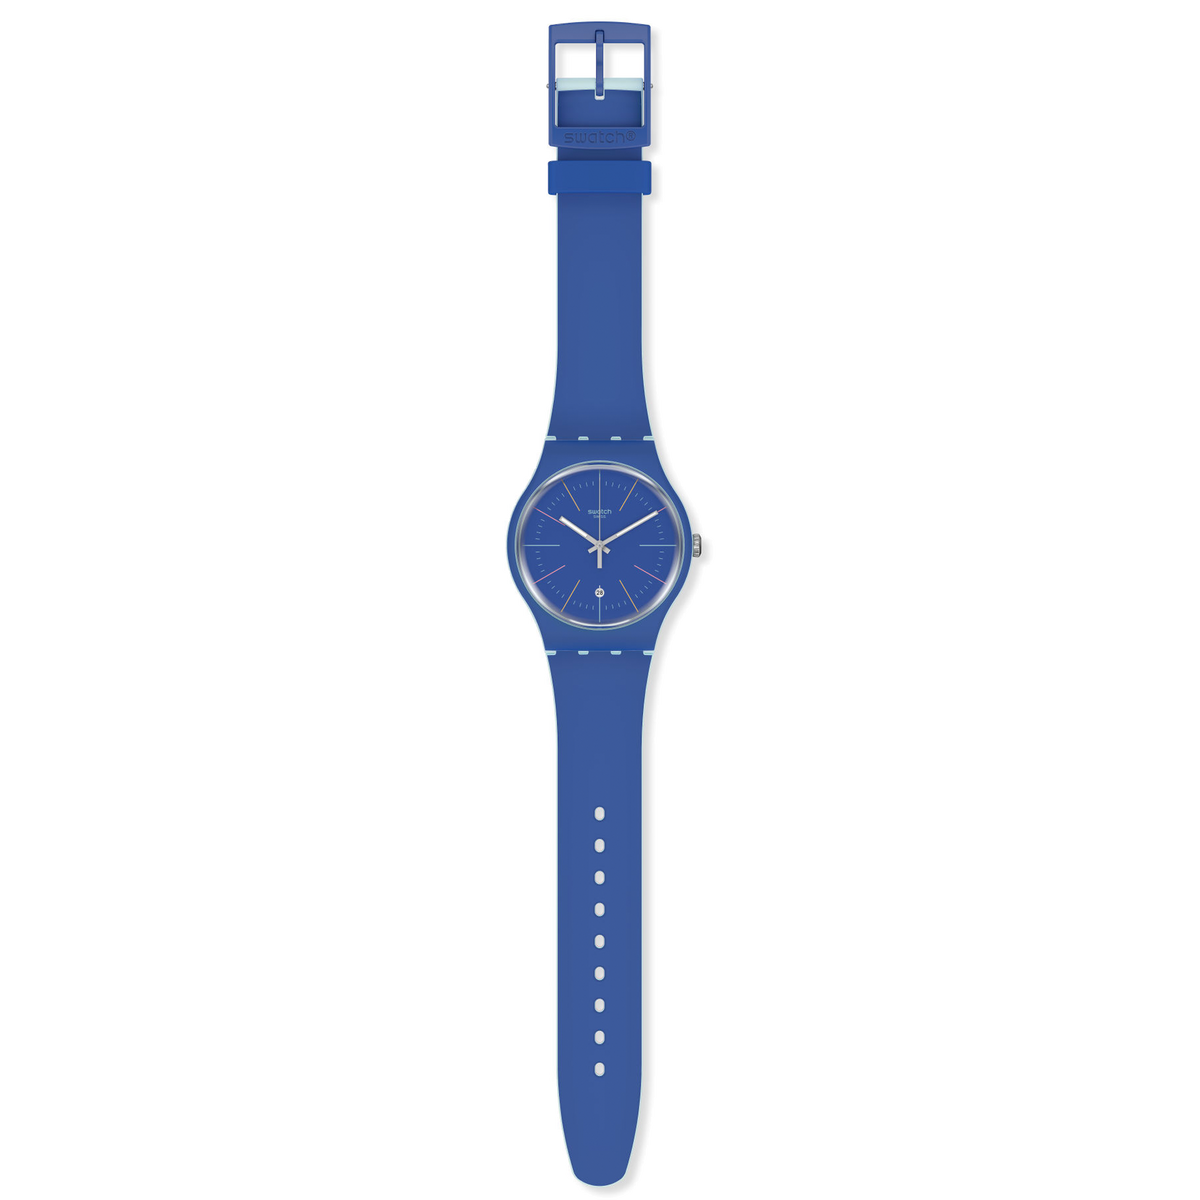 Swatch Watch 41mm - Blue Layered